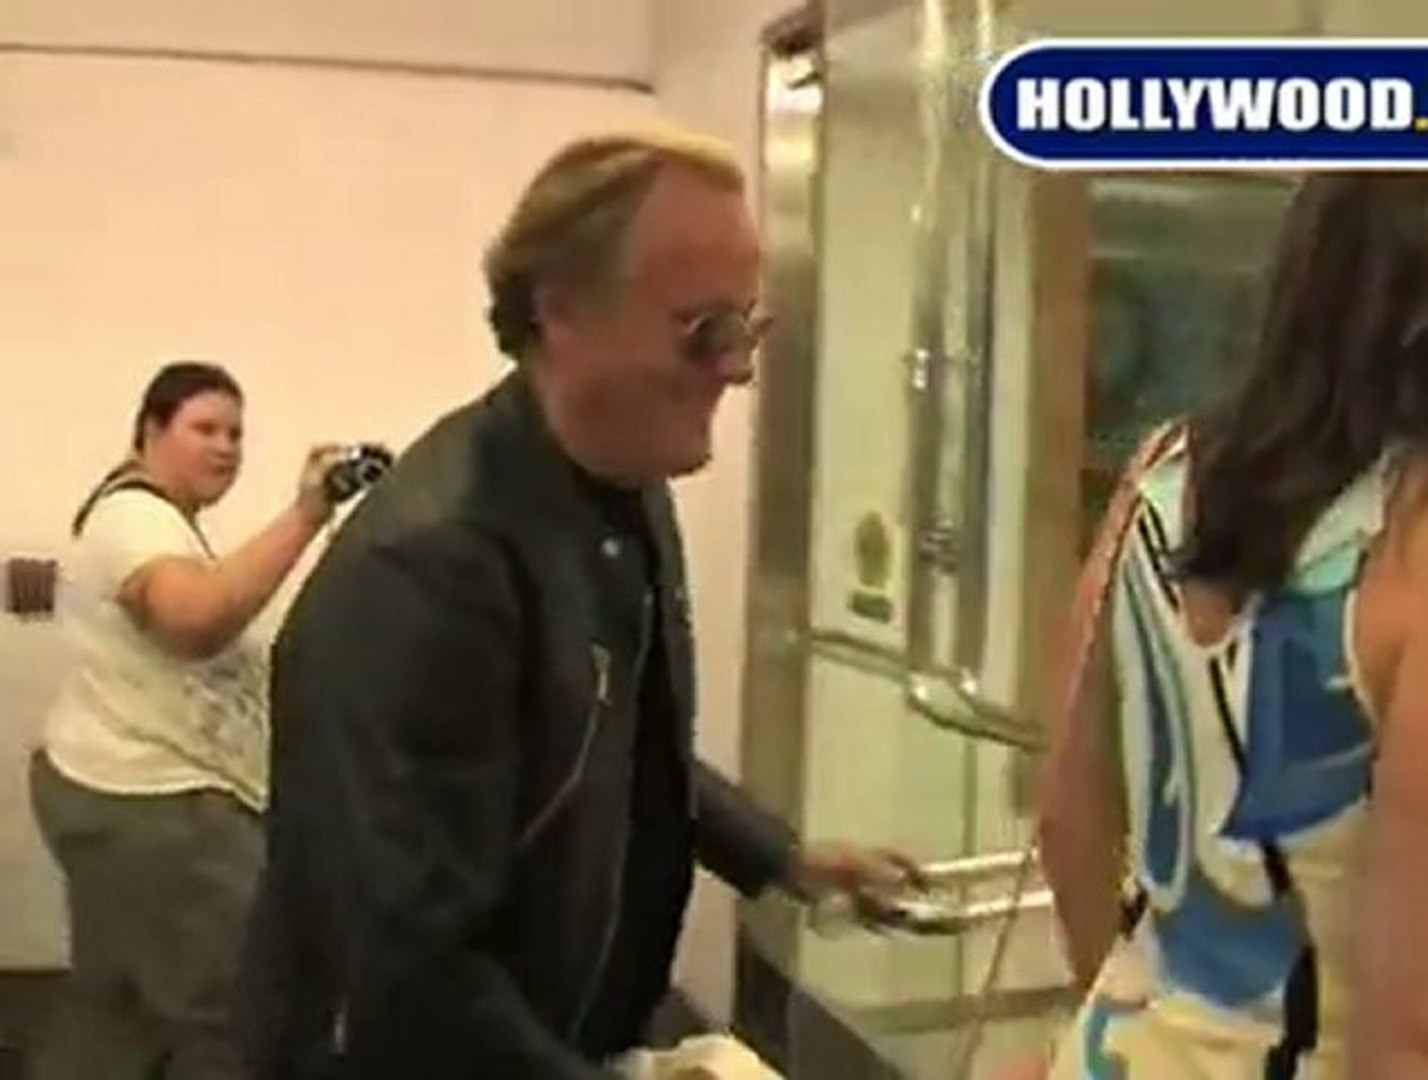 Peter Fonda Arrives At The Premiere Of WHATEVER WORKS